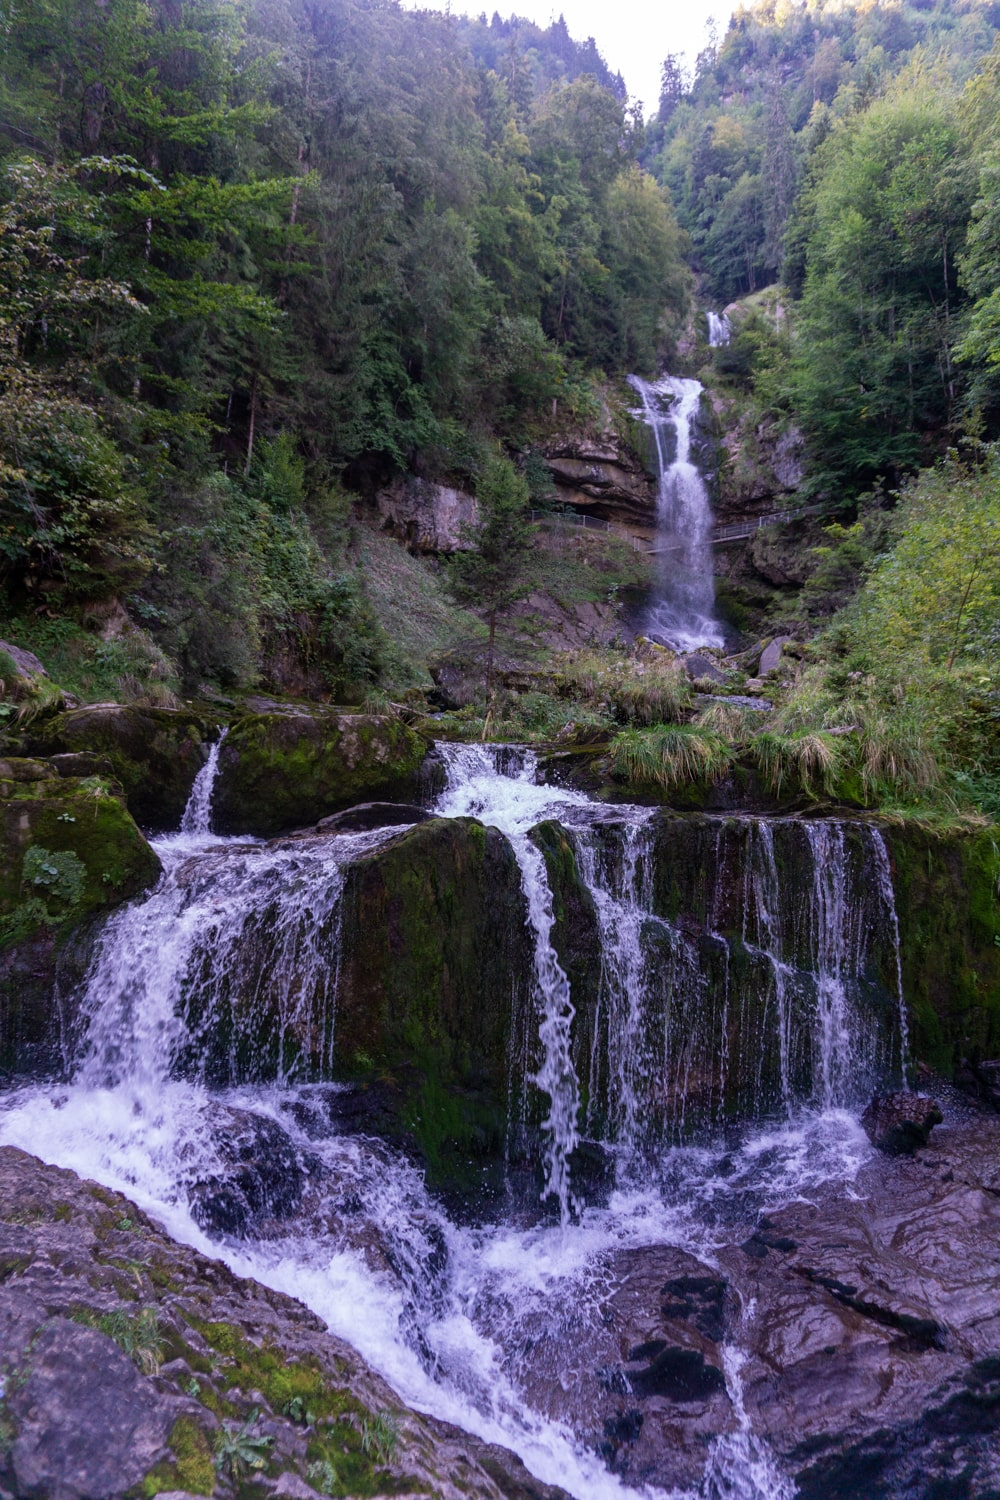 The Giessbach Falls